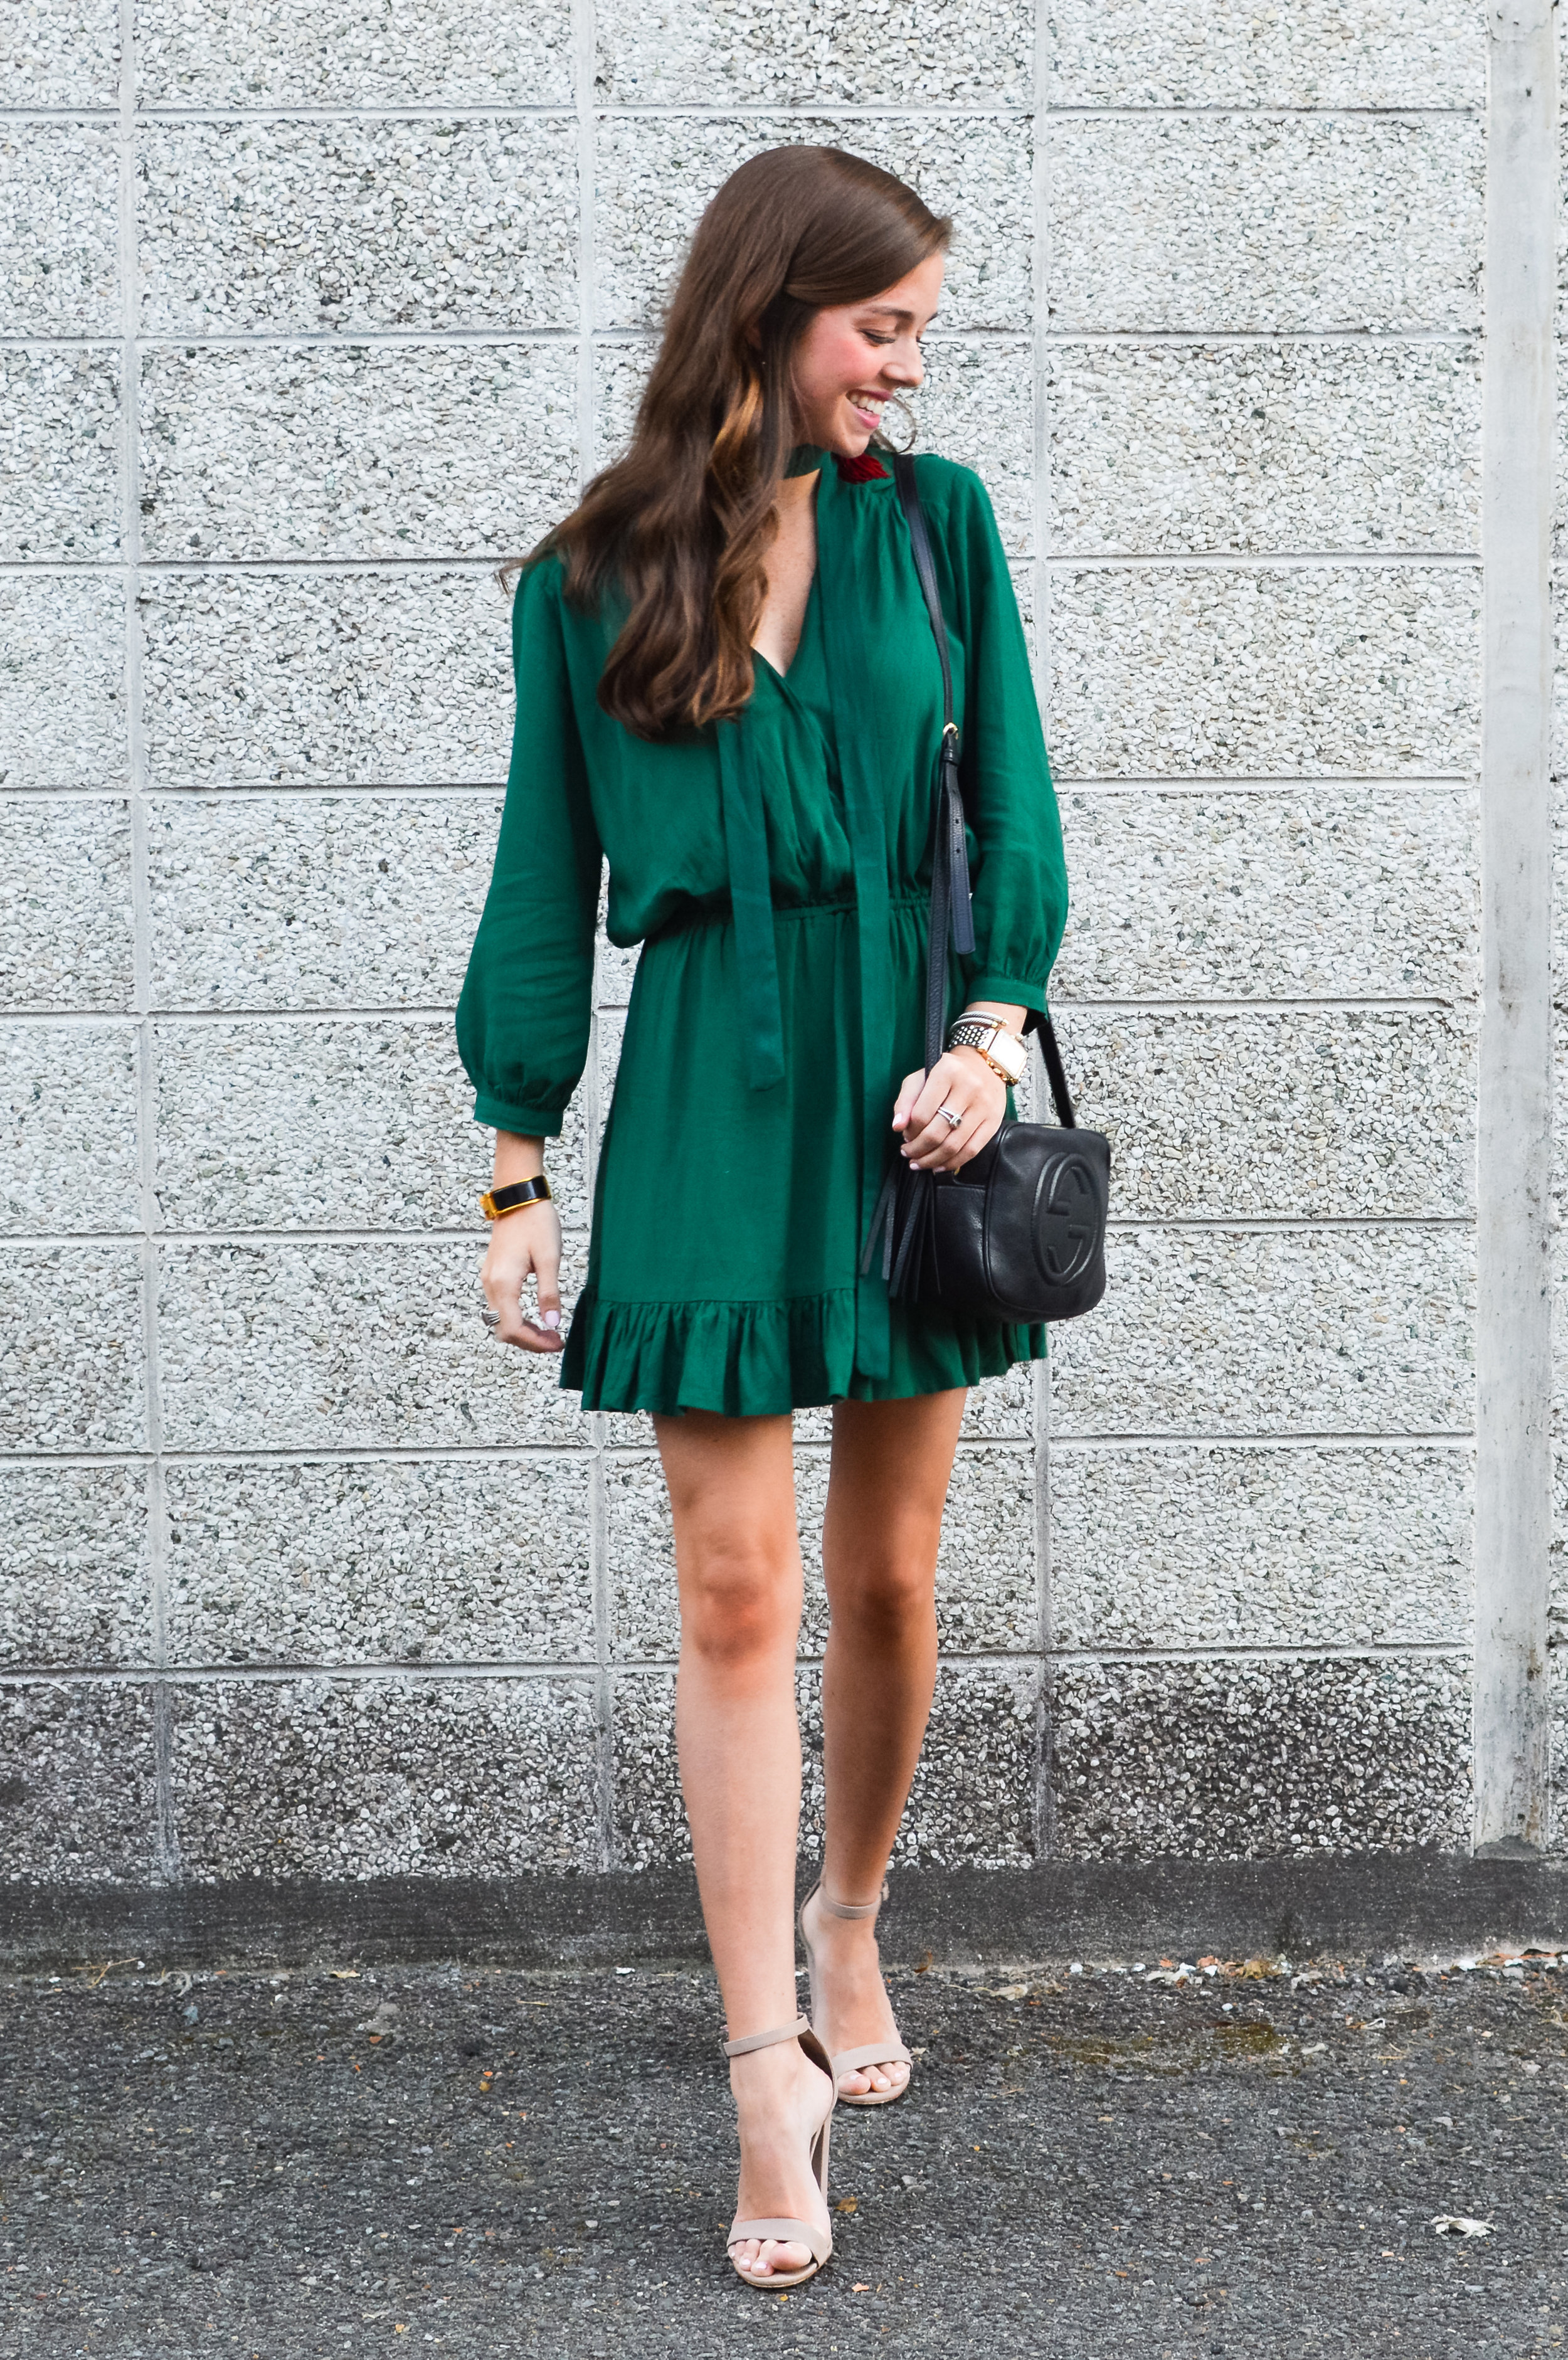 fashion blogger lcb style green dress tassel earring  (14 of 30).jpg